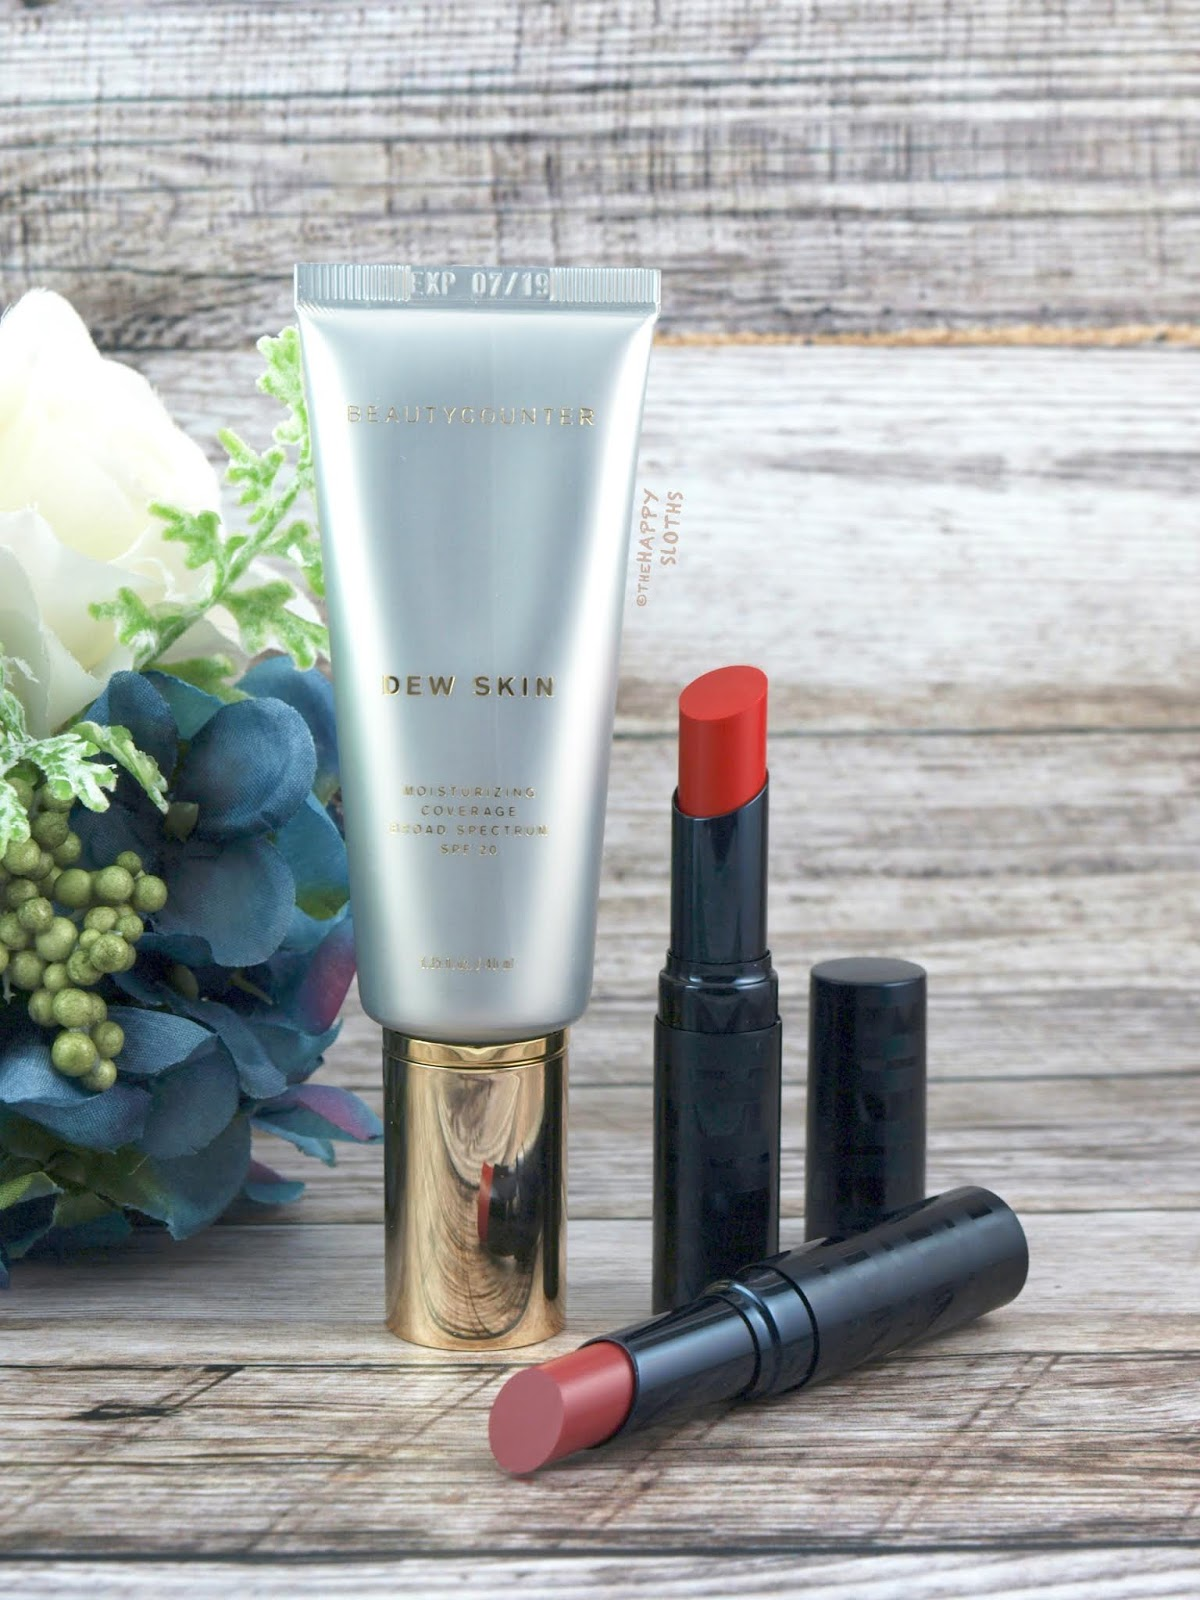 Beautycounter | Dew Skin Moisturizing Coverage SPF 20 & Color Intense Lipstick: Review and Swatches